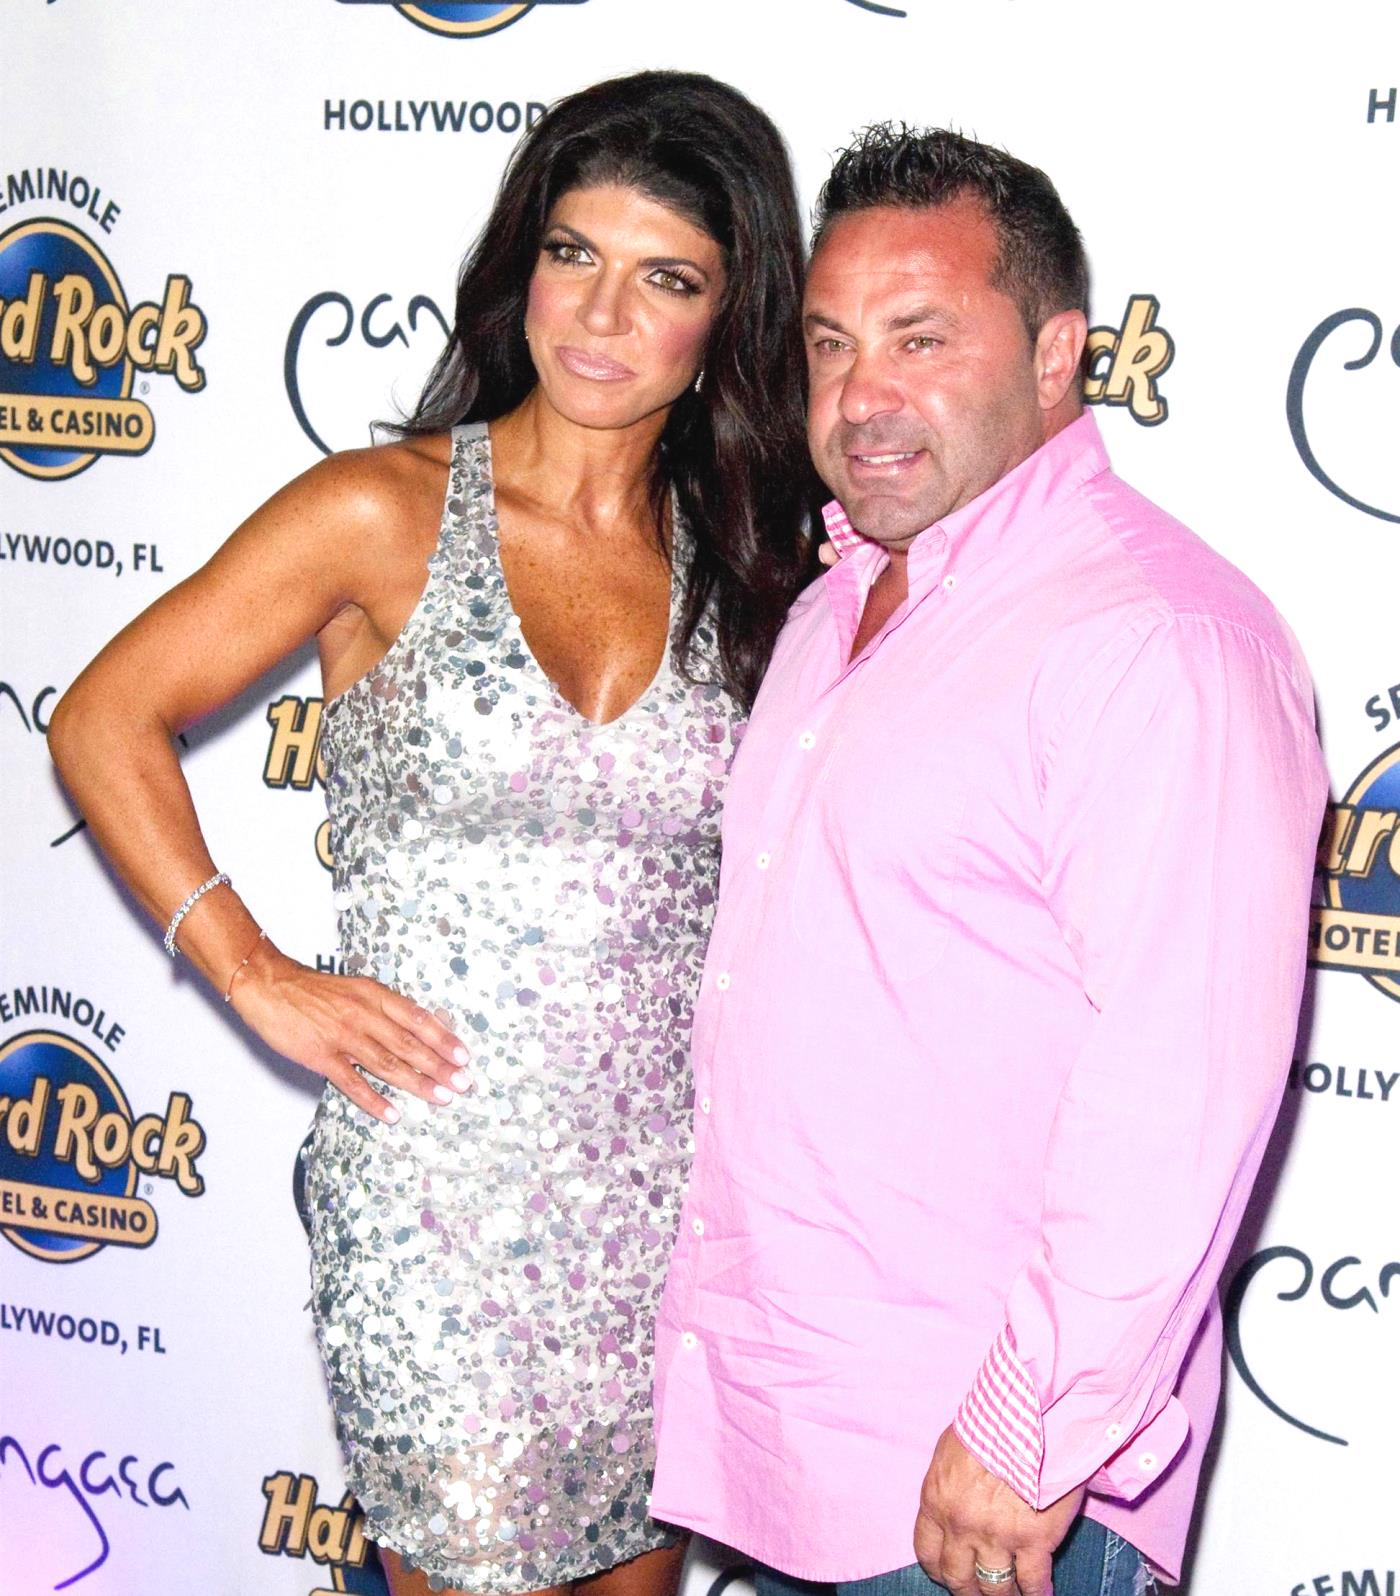 REPORT: Joe Giudice Wants to Divorce Teresa and Feels Angry Towards Her, Find Out Why, Plus is His Family Against Her Filming RHONJ in Italy?